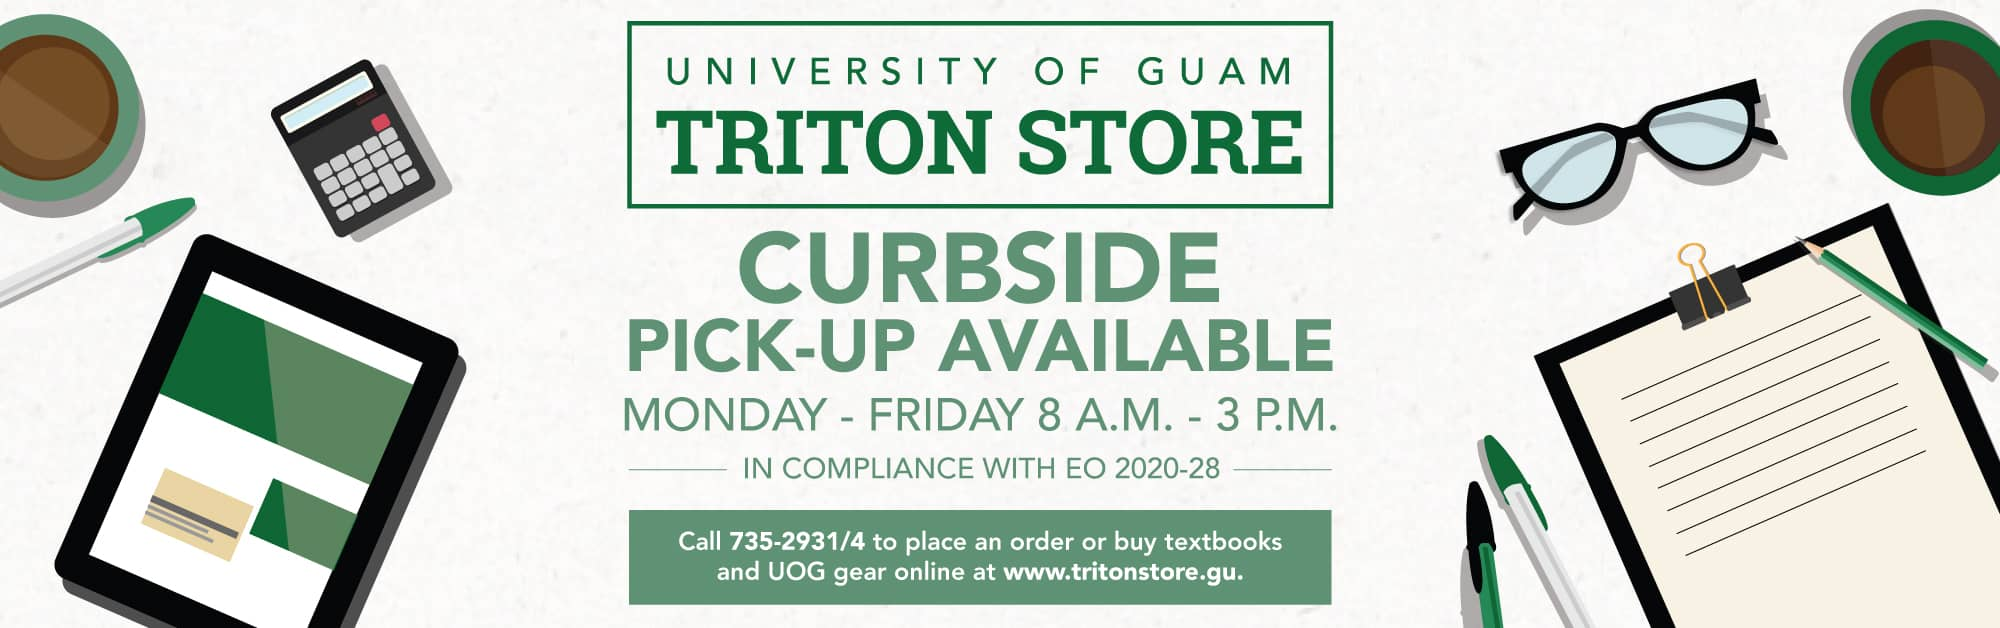 Triton Store | Curbside pick-up available